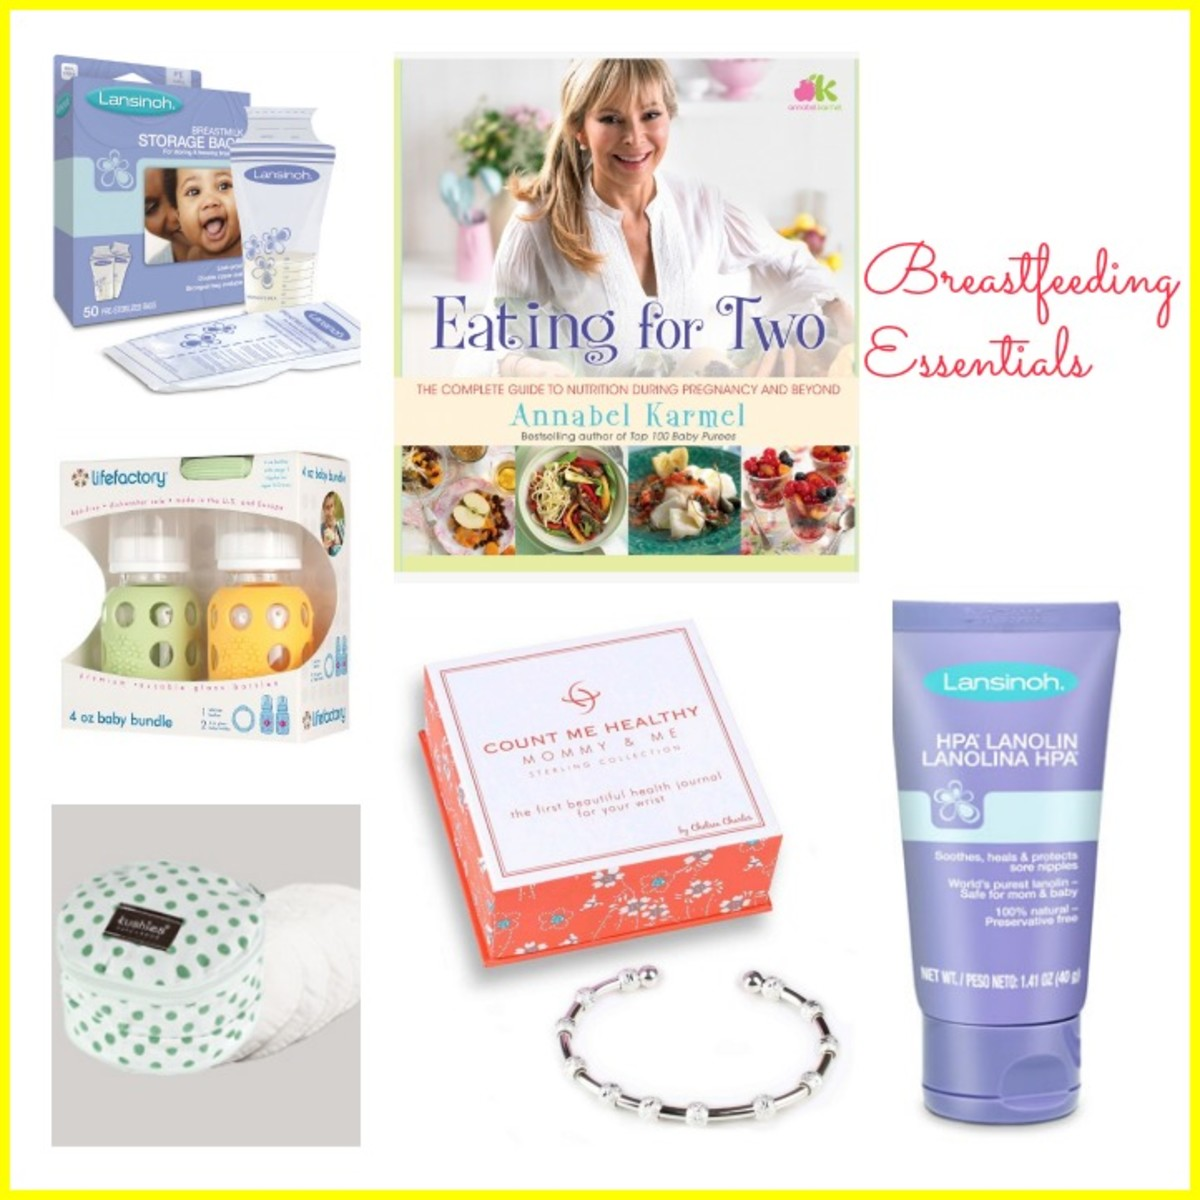 breastfeeding essentials, lansinoh, annabel Karmel, lifefactory, kushies, count me healthy bracelets,